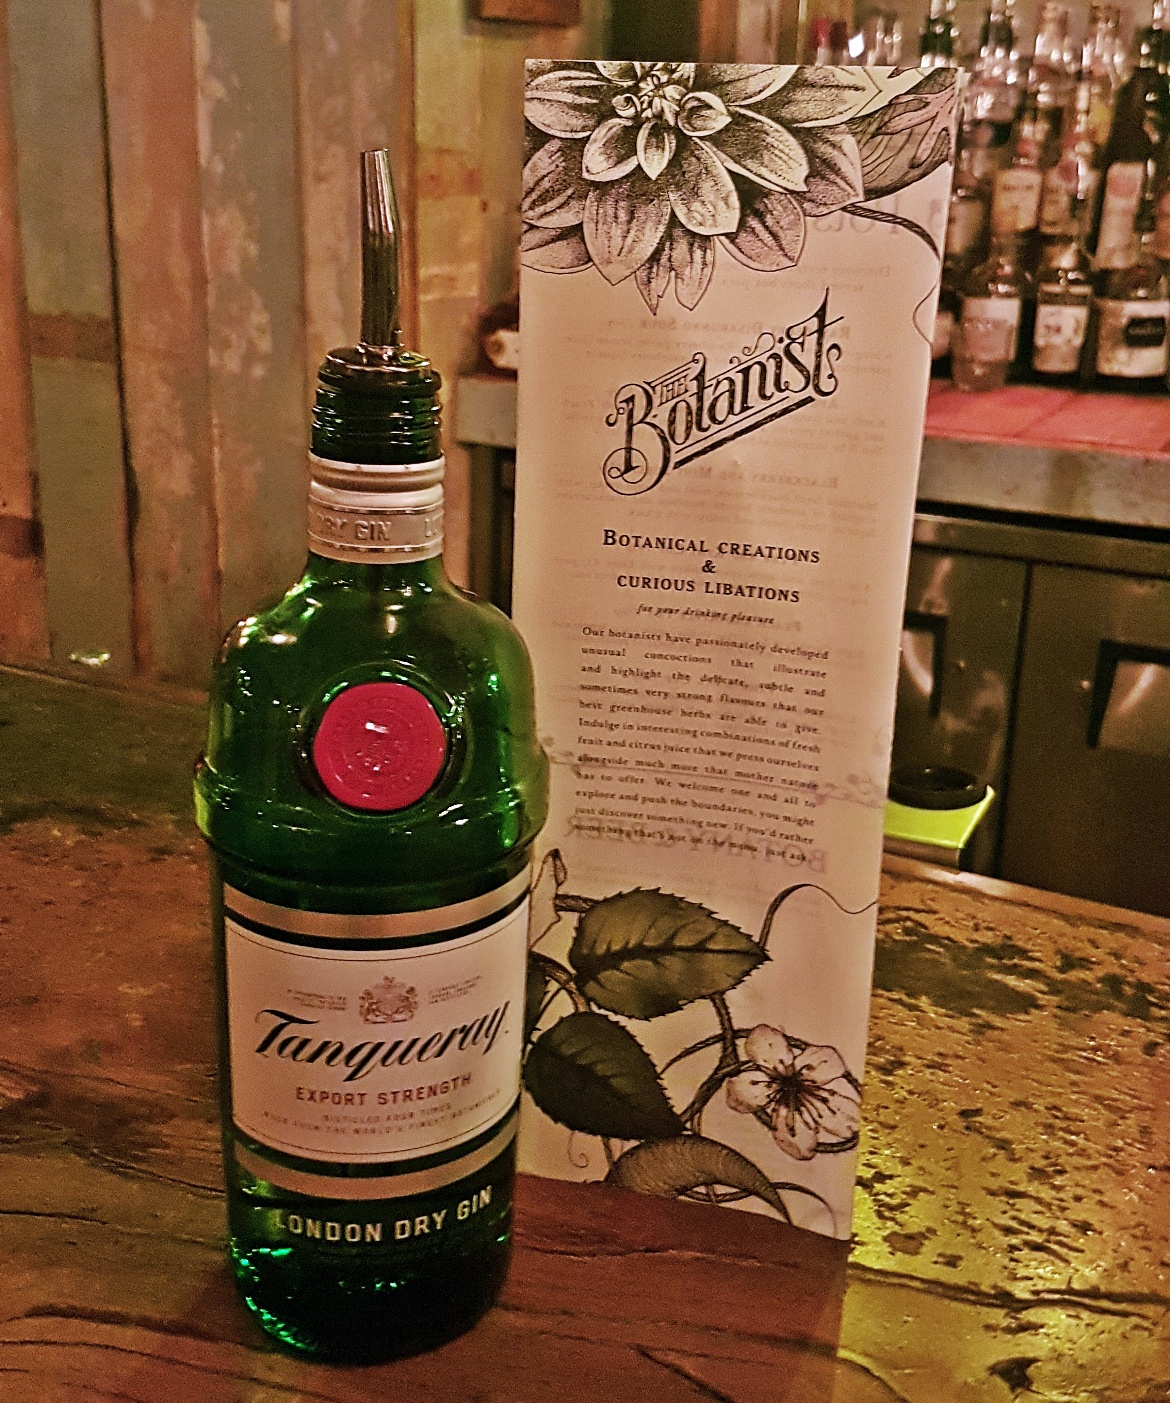 Tanqueray London Dry Gin - Gin Masterclass at the Botanist Leeds, review by BeckyBecky Blogs